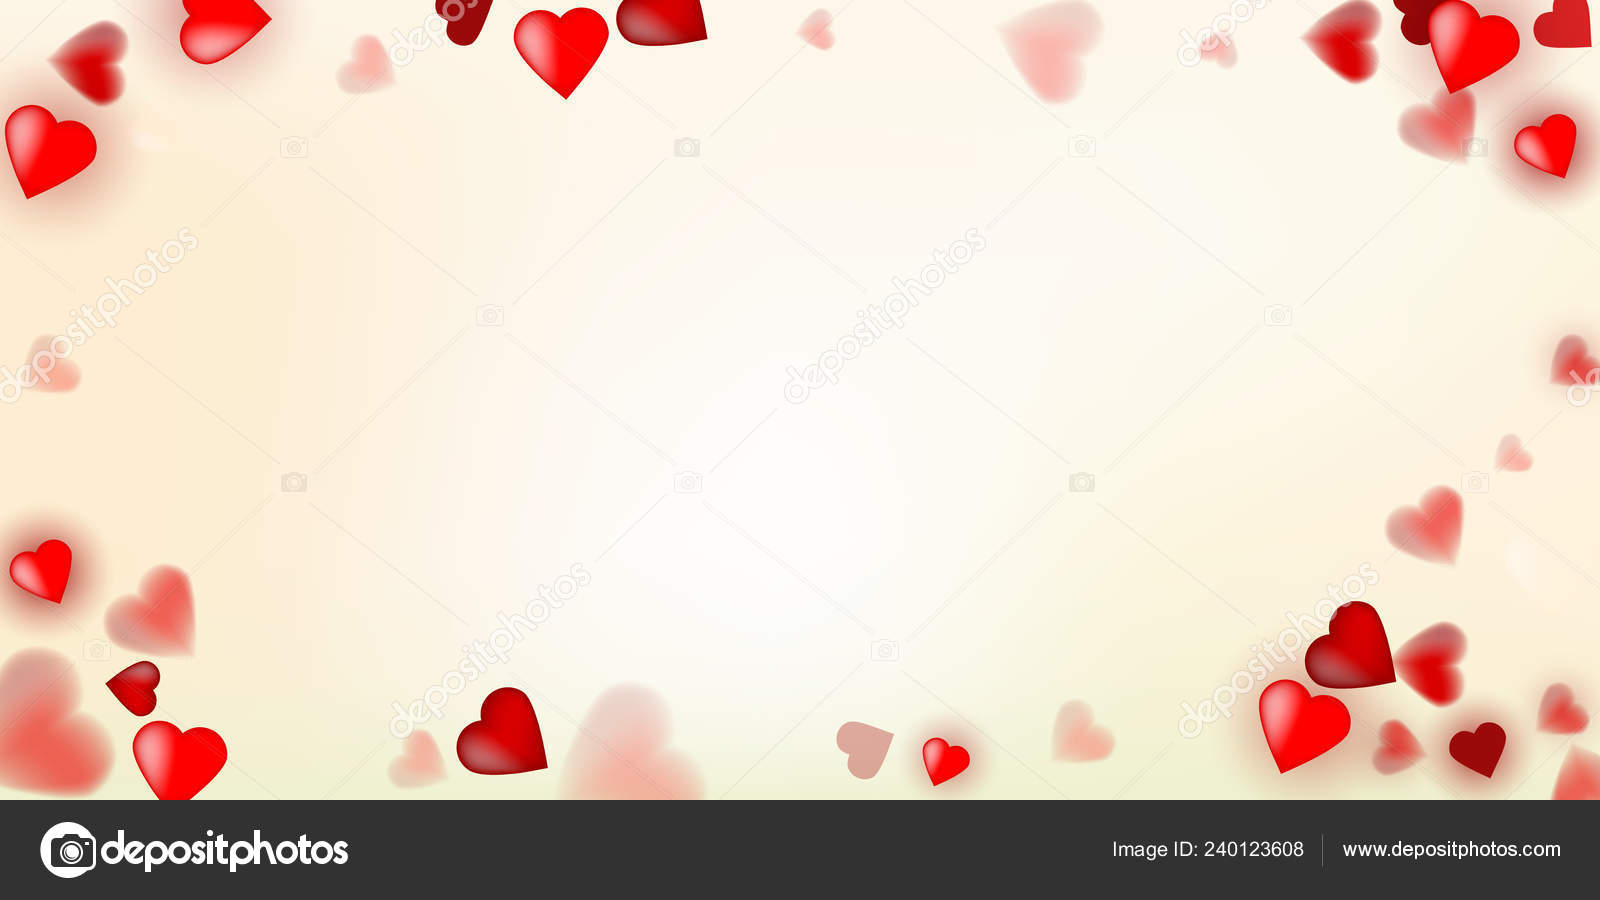 Vector Illustration With Red Love Hearts On Vintage Background Stock Photo C Wonderyusya 240123608